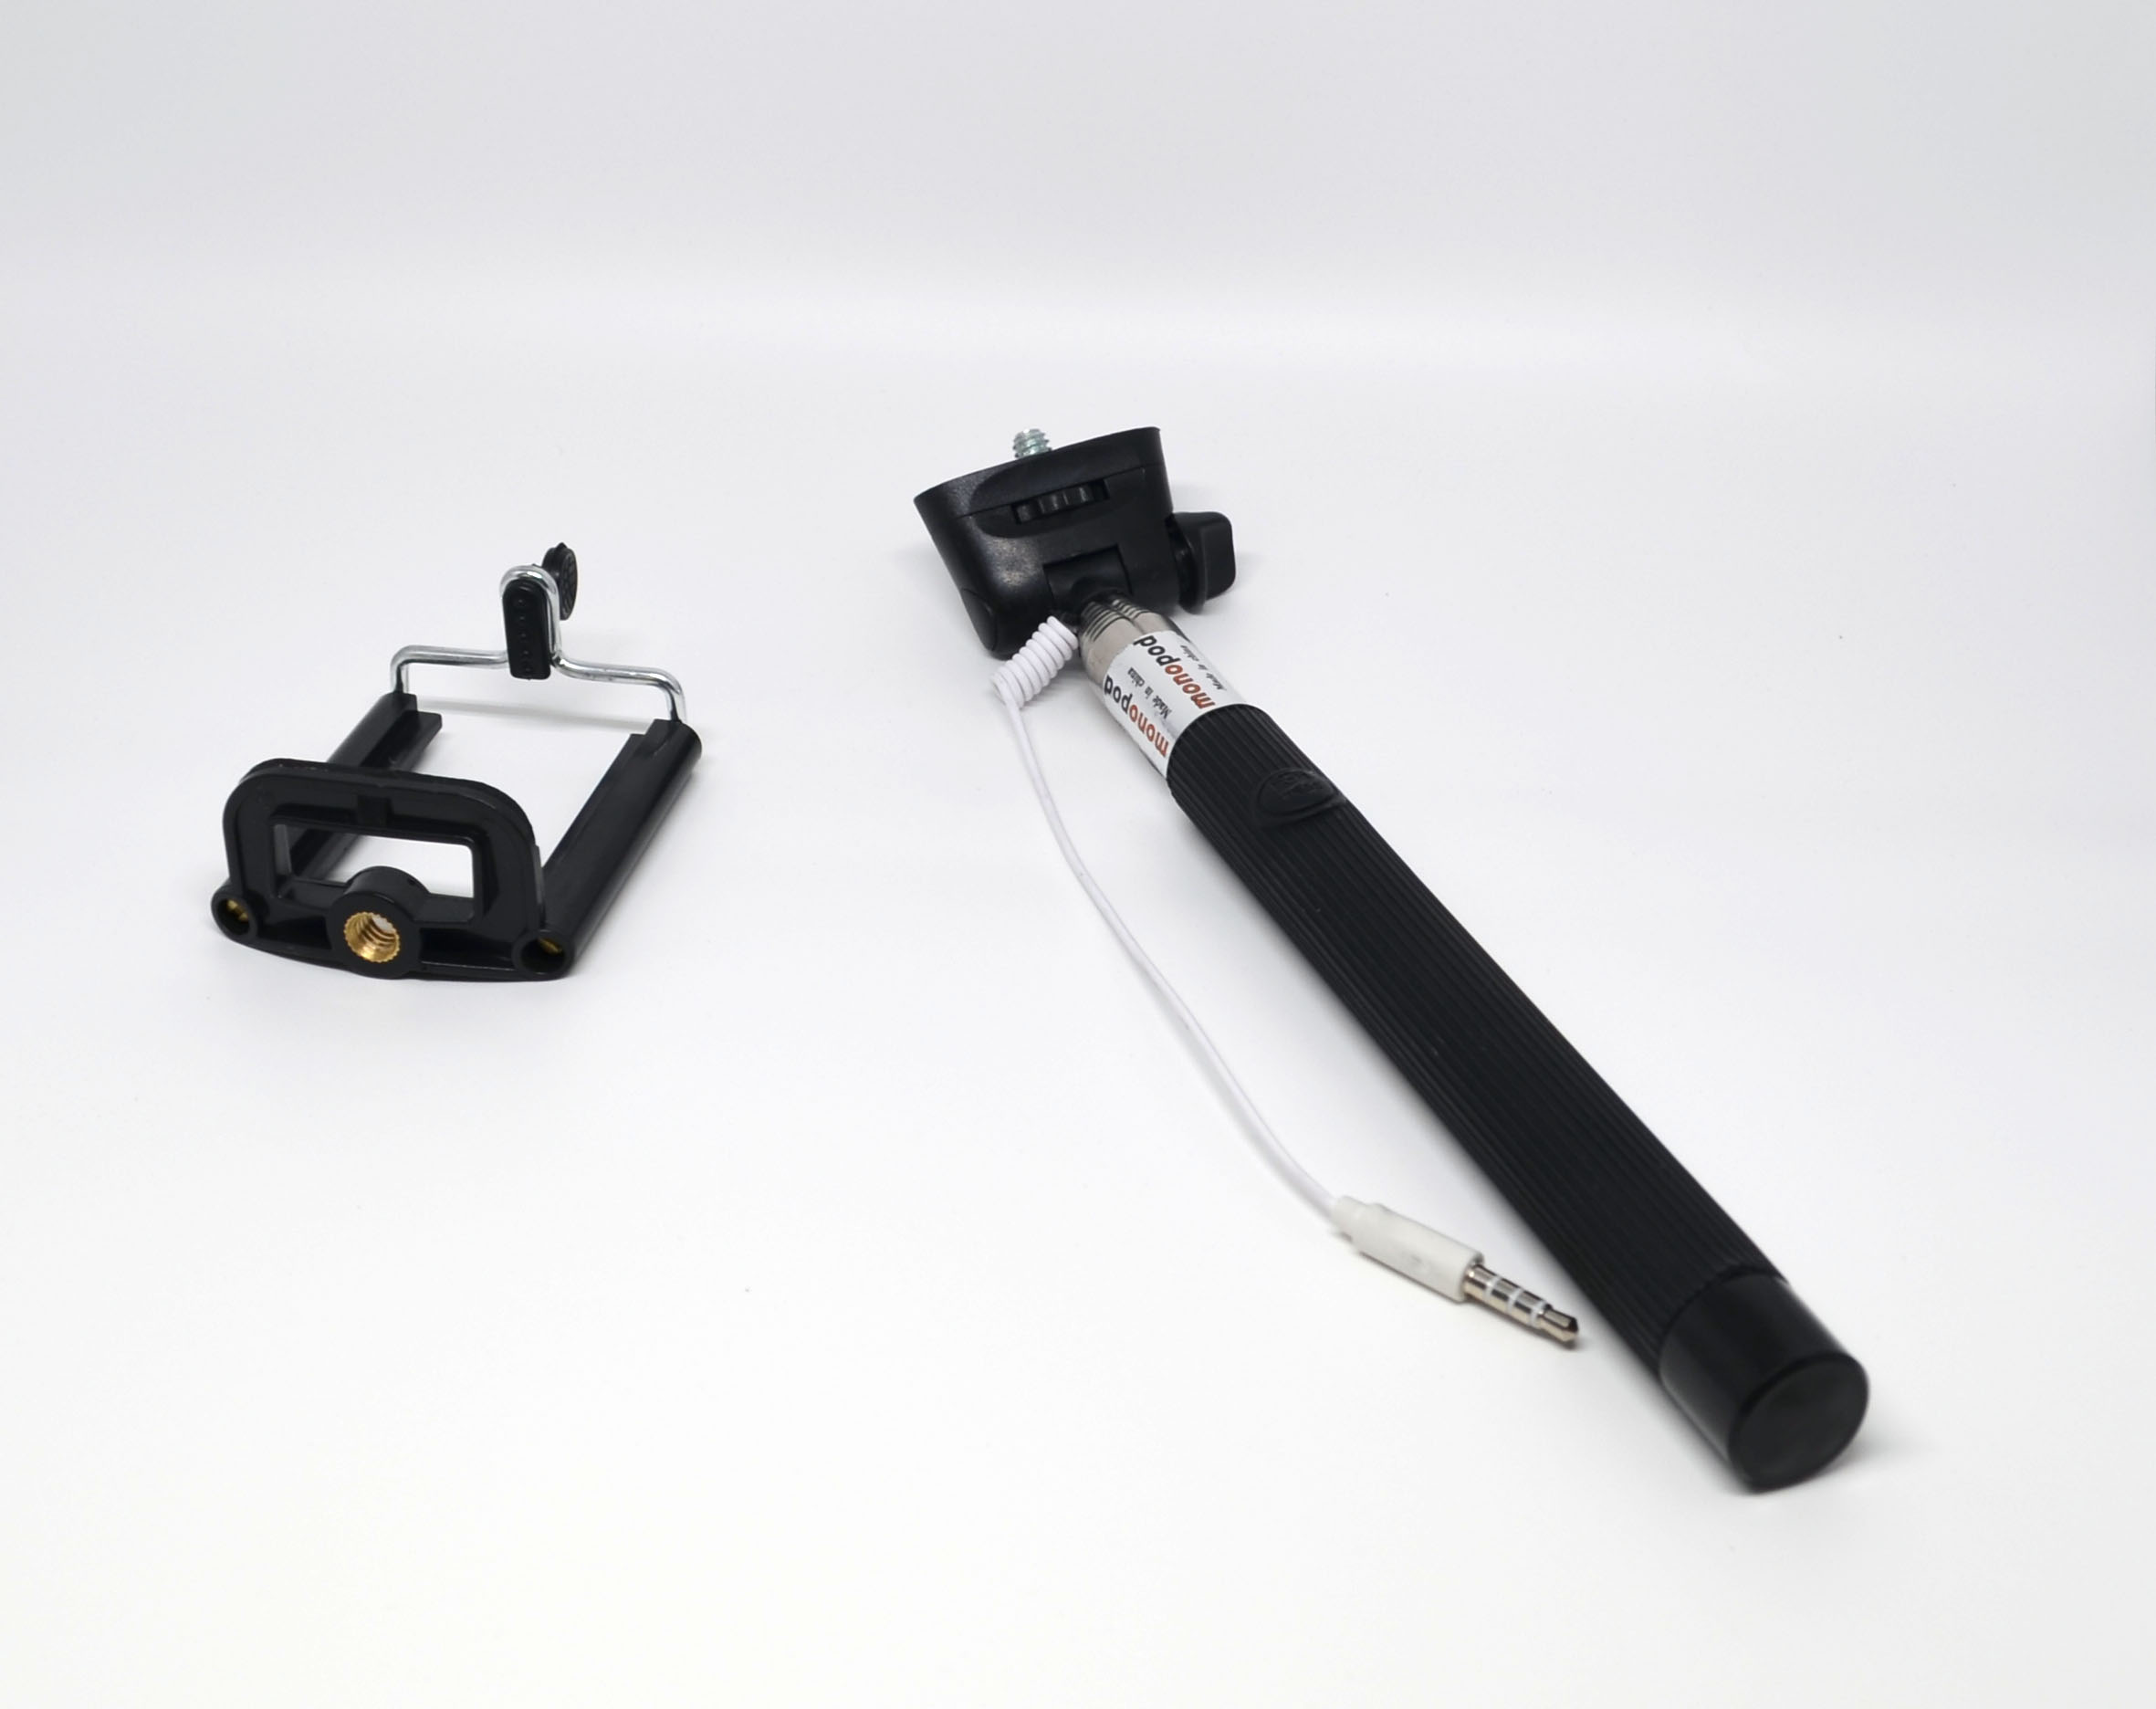 Cable take pole selfie stick review